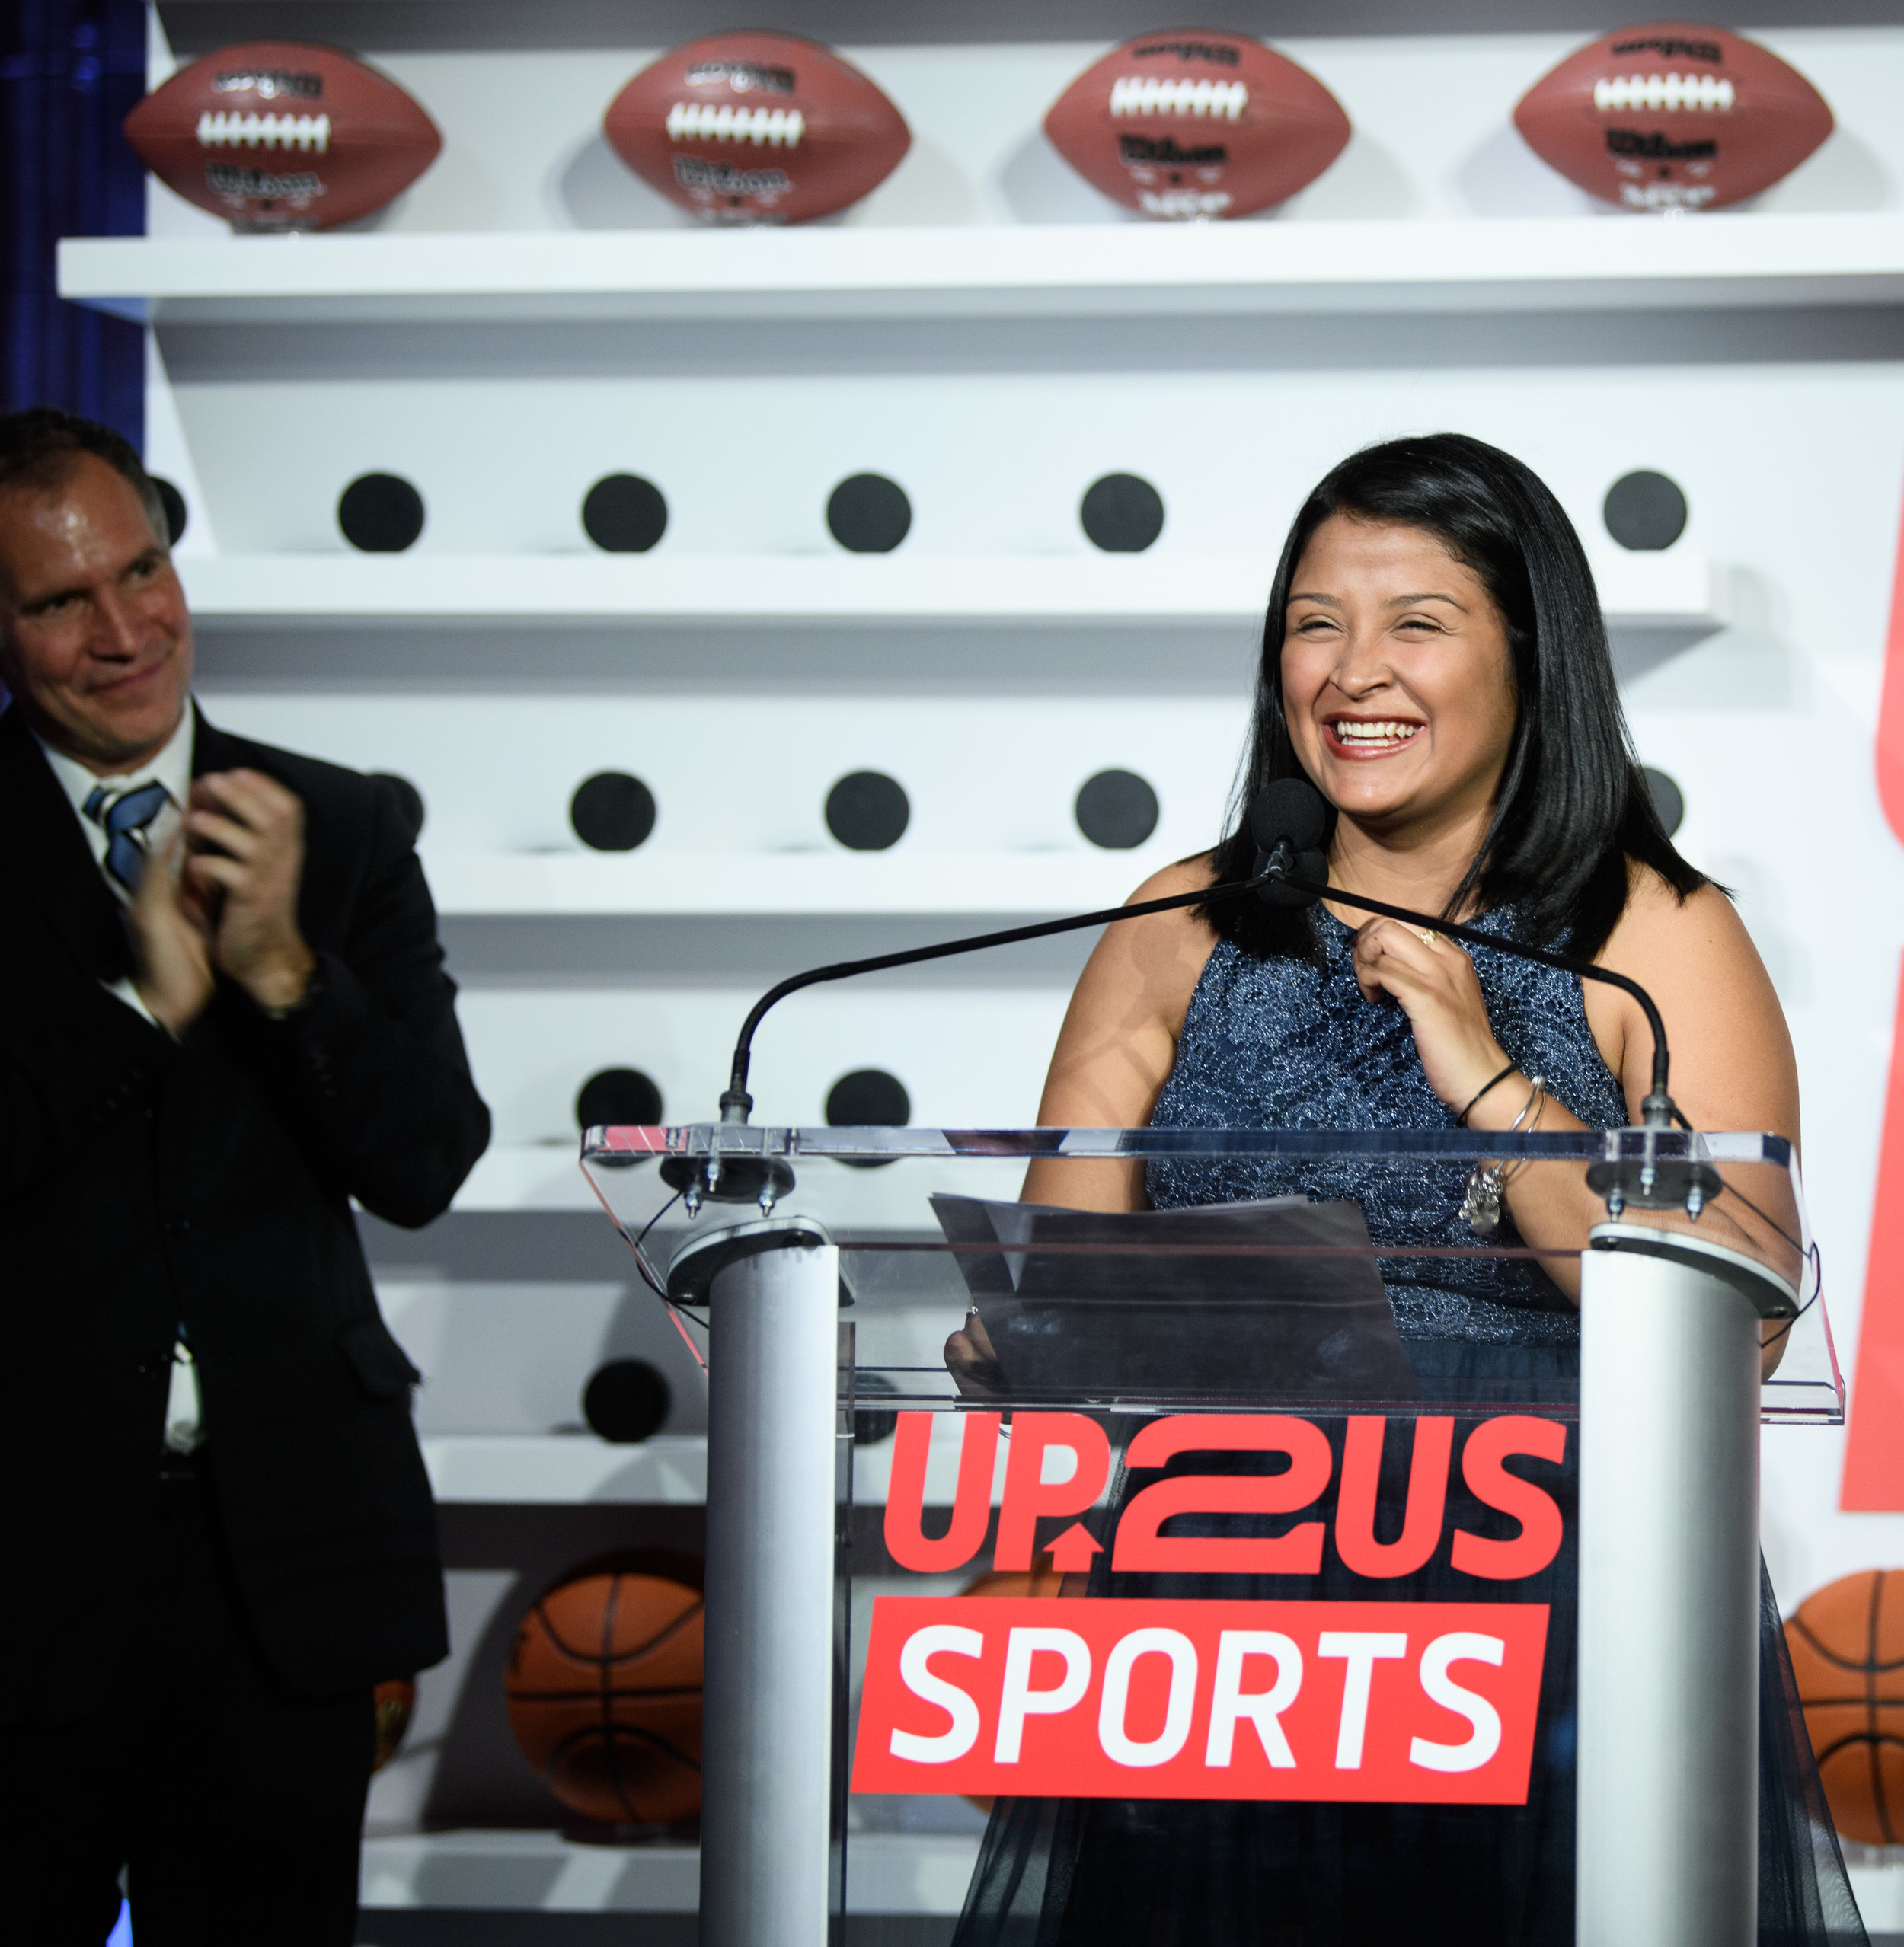 NEW YORK, NY - MAY 15: Award Recipient Coach Delmy Del Cid attends the Up2Us Sports Gala 2017 at Guastavino's on May 15, 2017 in New York City. (Photo by Dave Kotinsky/Getty Images for Up2Us Sports)